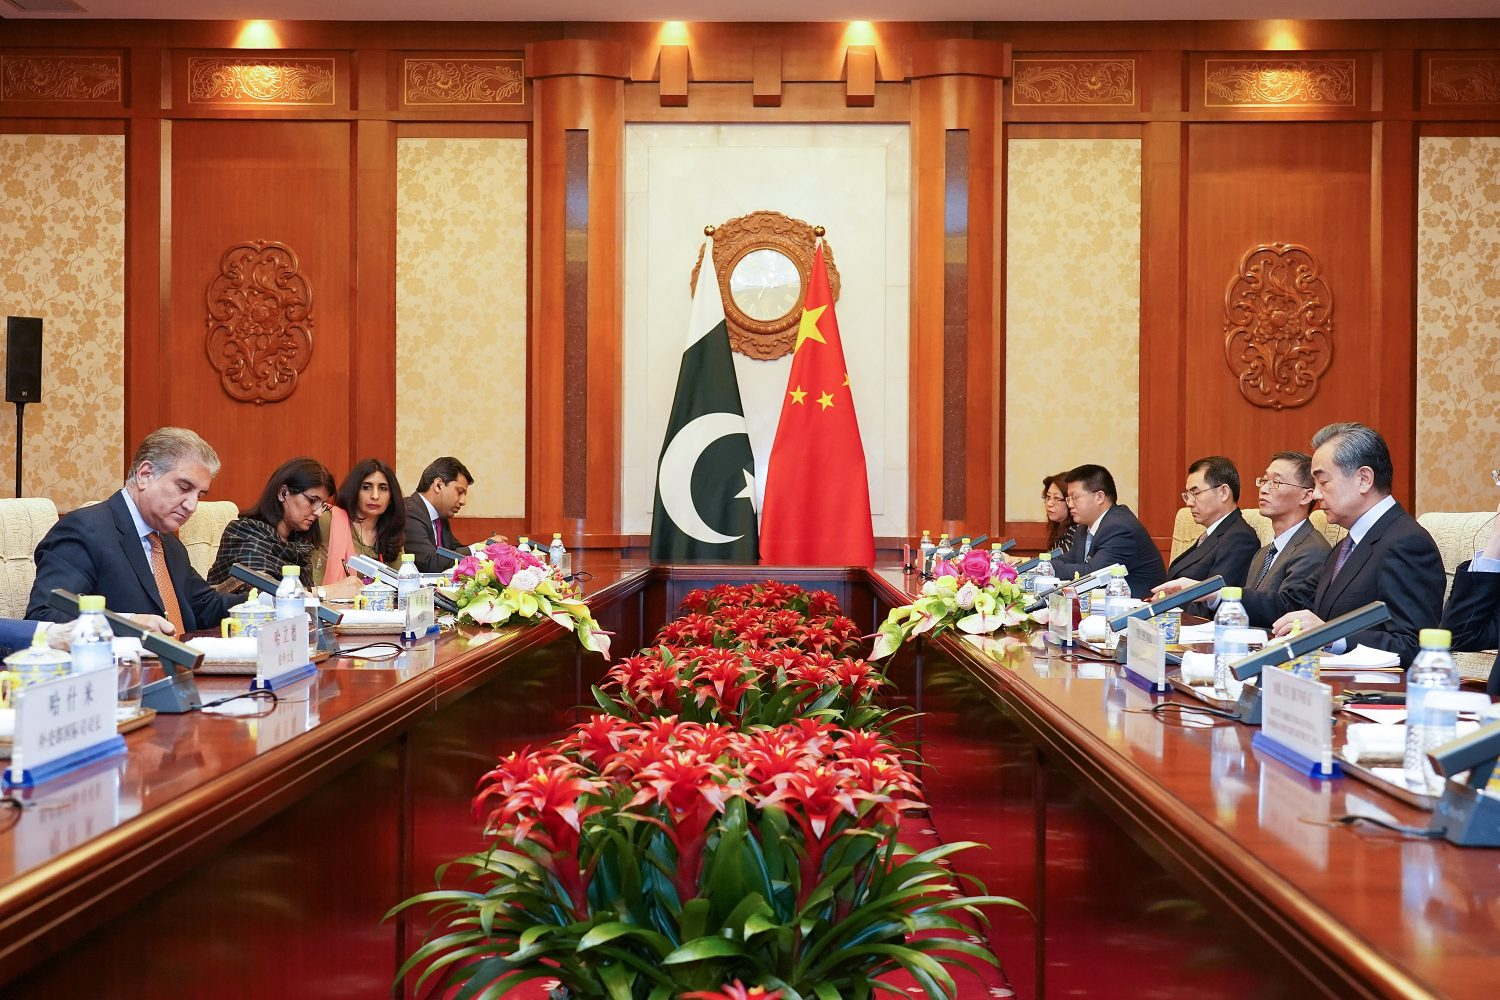 Chinese Foreign Minister Wang Yi and Pakistani Foreign Minister Shah Mehmood Qureshi attend a meeting at Diaoyutai State Guesthouse in Beijing, China, March 19, 2019. Andrea Verdelli/Pool via REUTERS